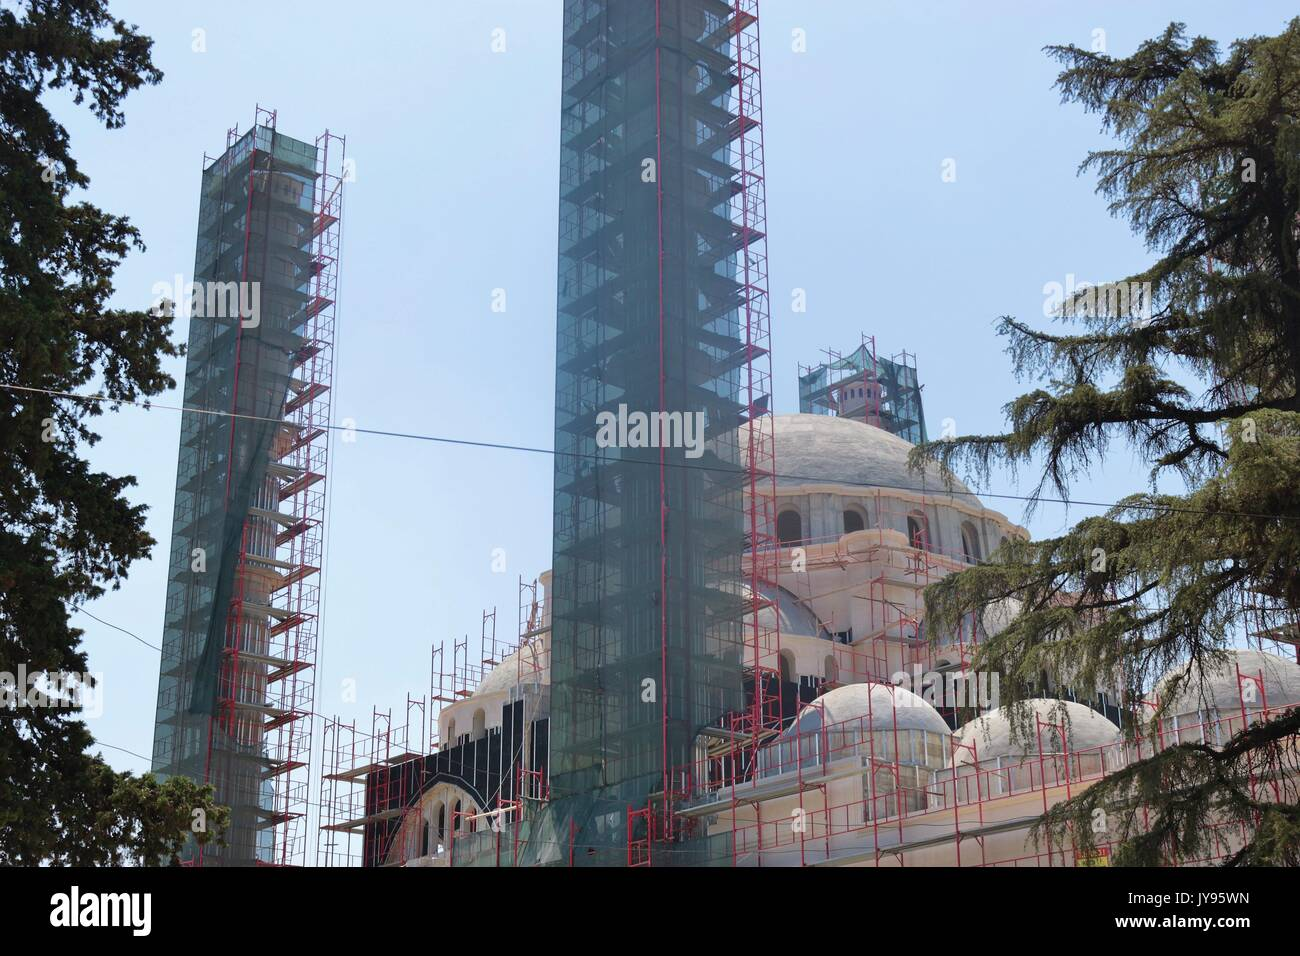 The Great Mosque in the center of Tirana, which is currently under construction. Albania, Southeast Europe. - Stock Image